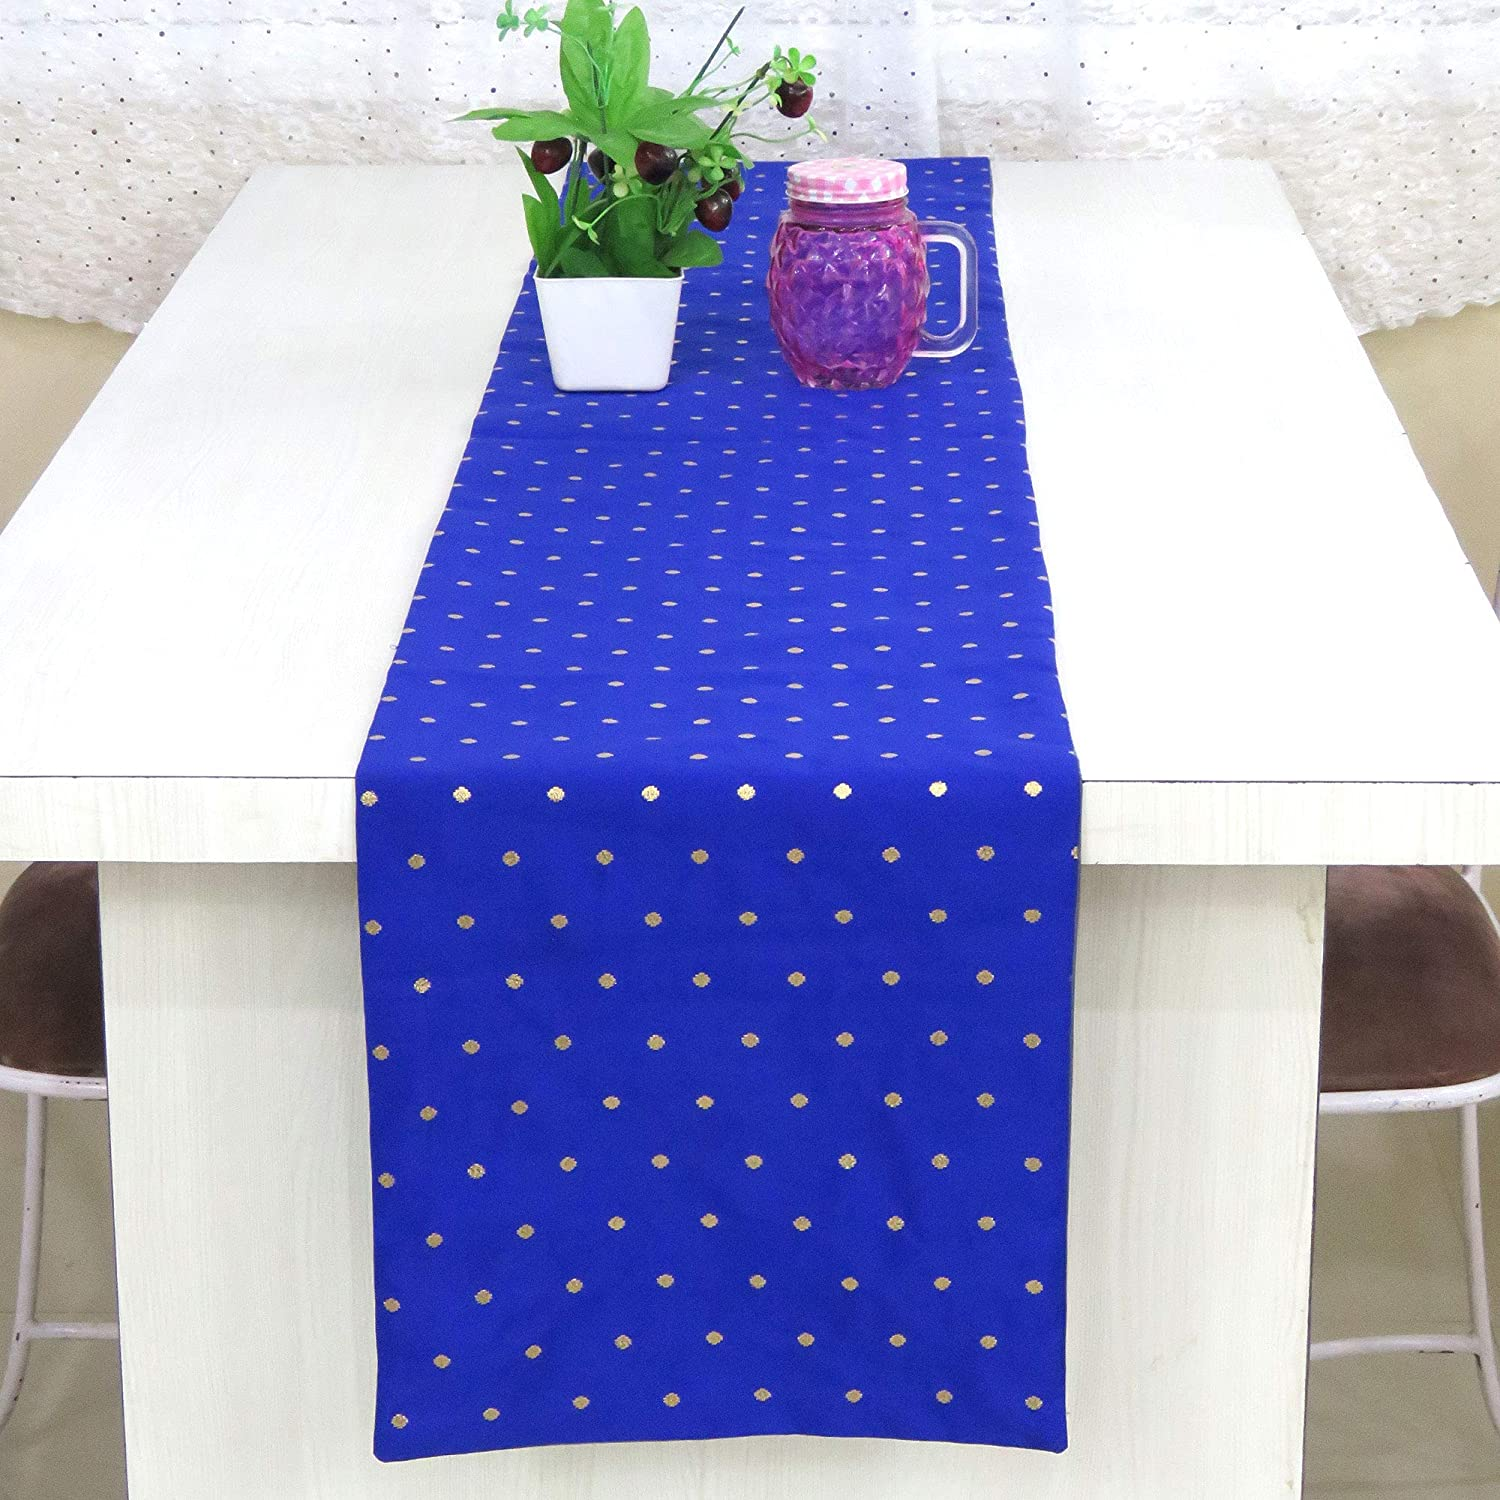 Buy Riara Art Silk Banarsi Brocade Traditional Table Runner for Dining Table  4 & 6 Seater Table Cloth Rectangle Coffee Table Cloth 72x12 Inches (183 x  31 cm) (Royal Blue) Online at